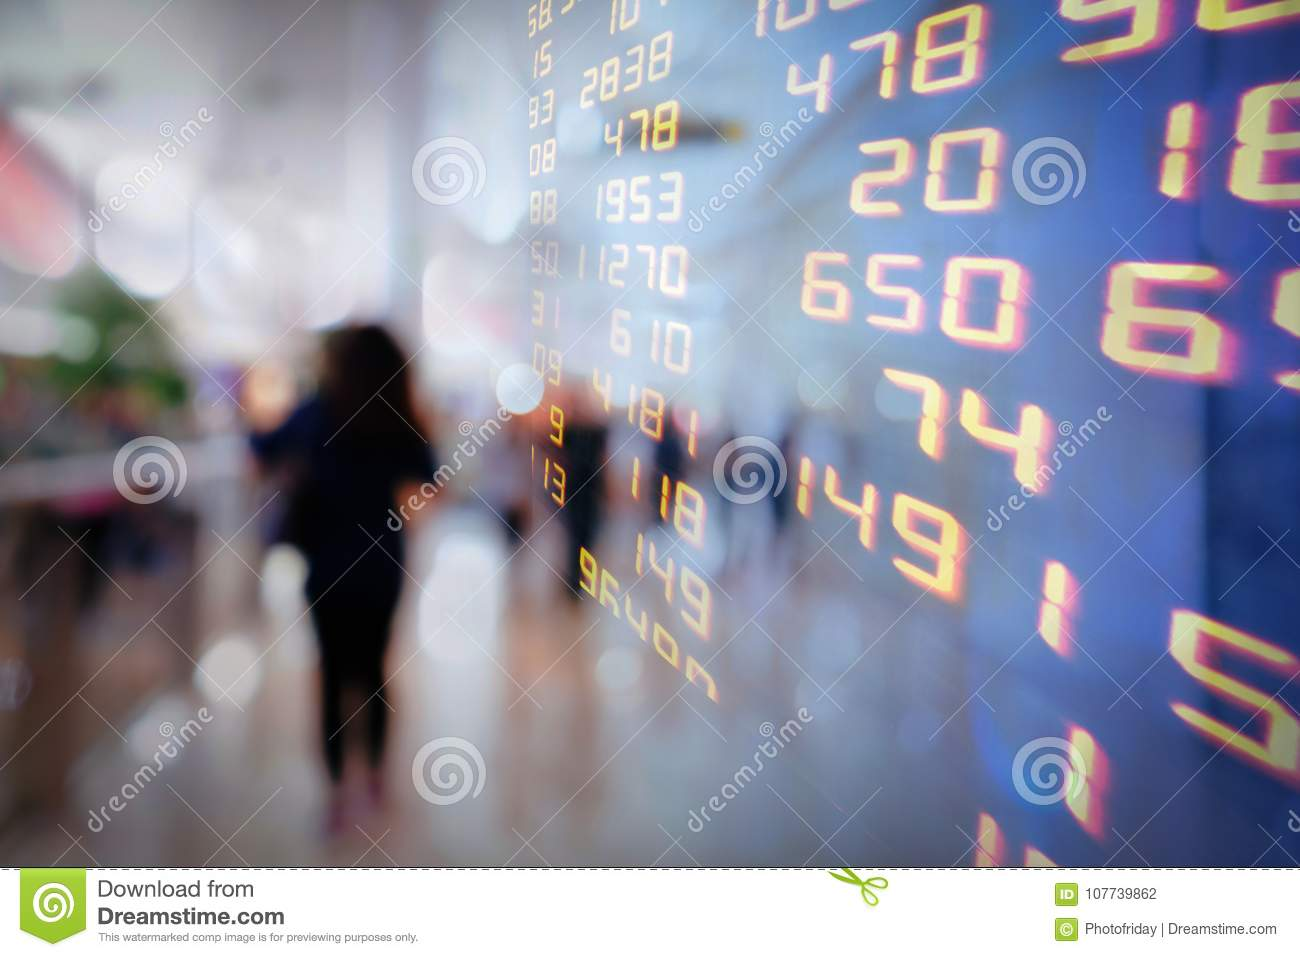 Display of Stock Market Exchanges or trading chart information background.